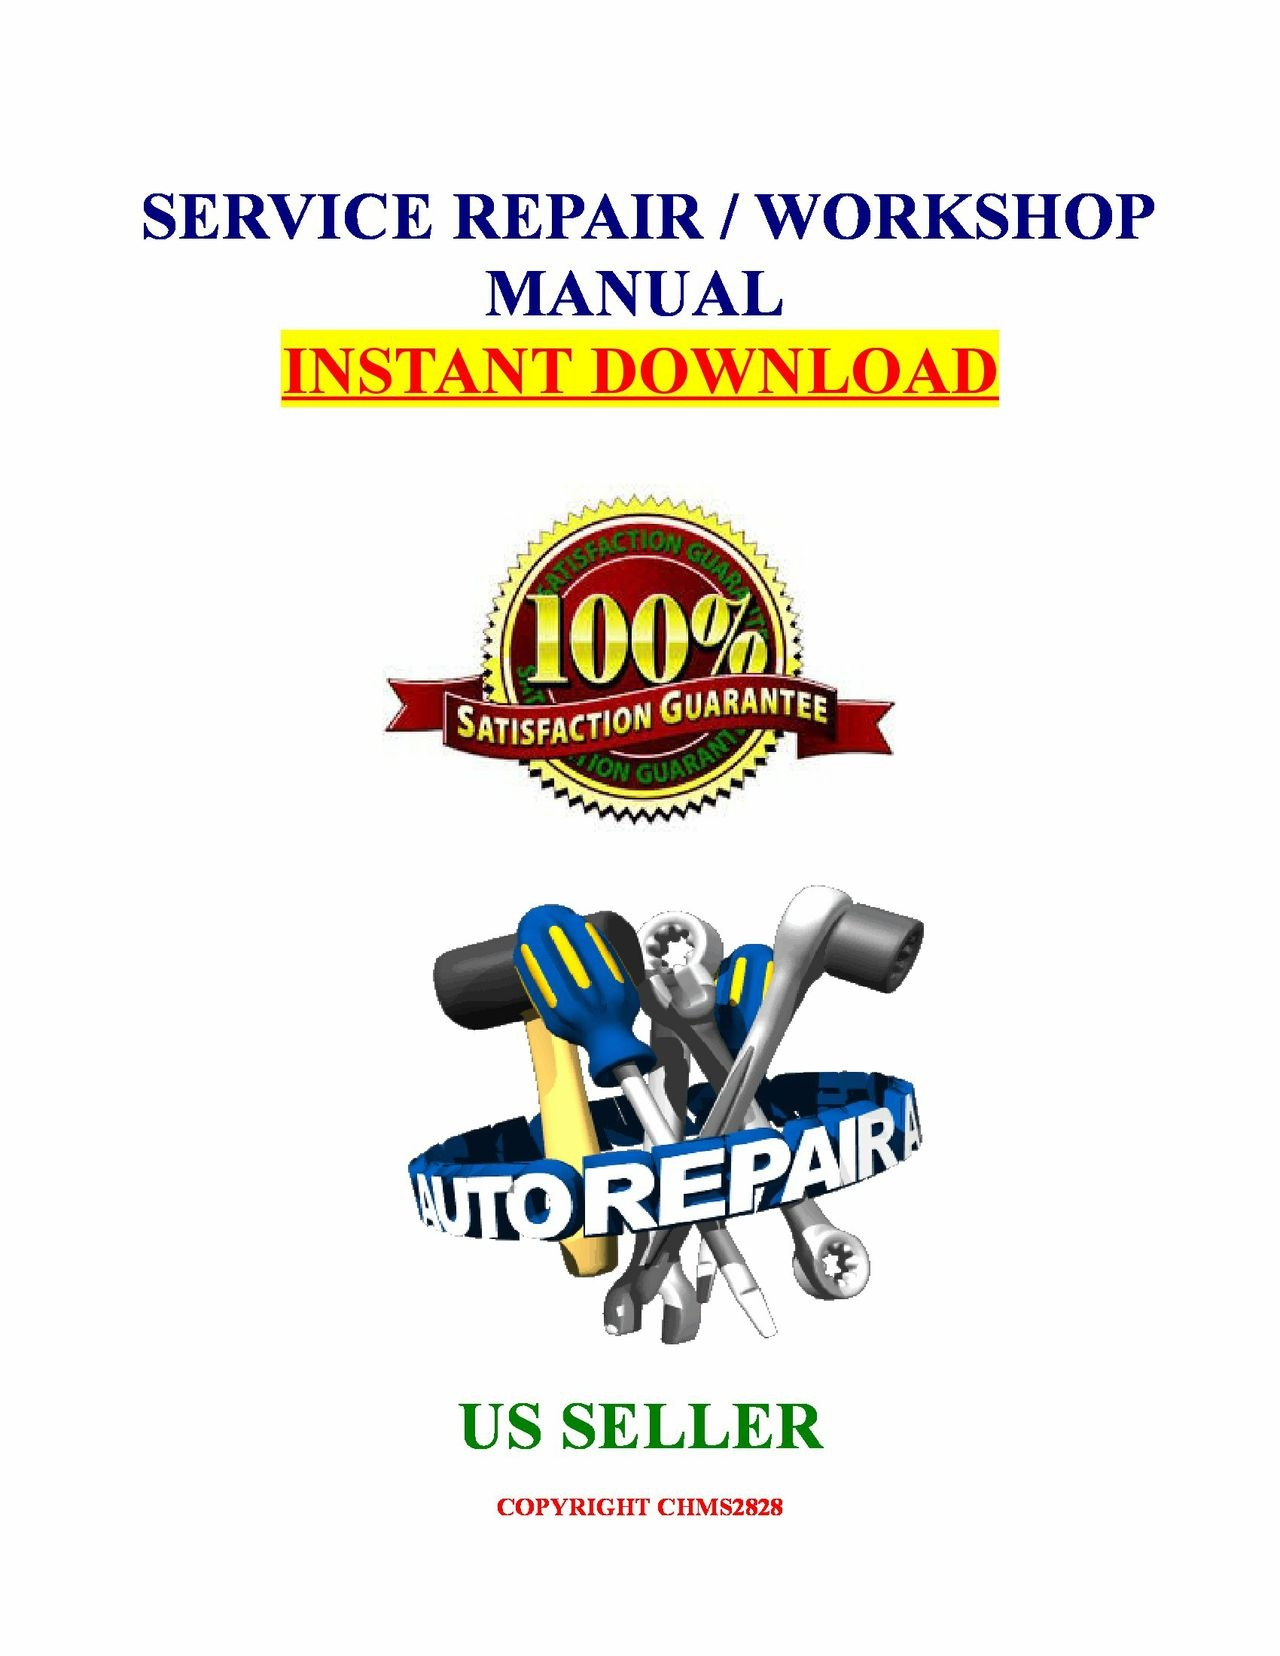 2005 rmz 250 repair manual suzuki rm250 service repair manual instant download rm 250 array jim u0027s manuals page 2 sellfy com rh sellfy com fandeluxe Image collections